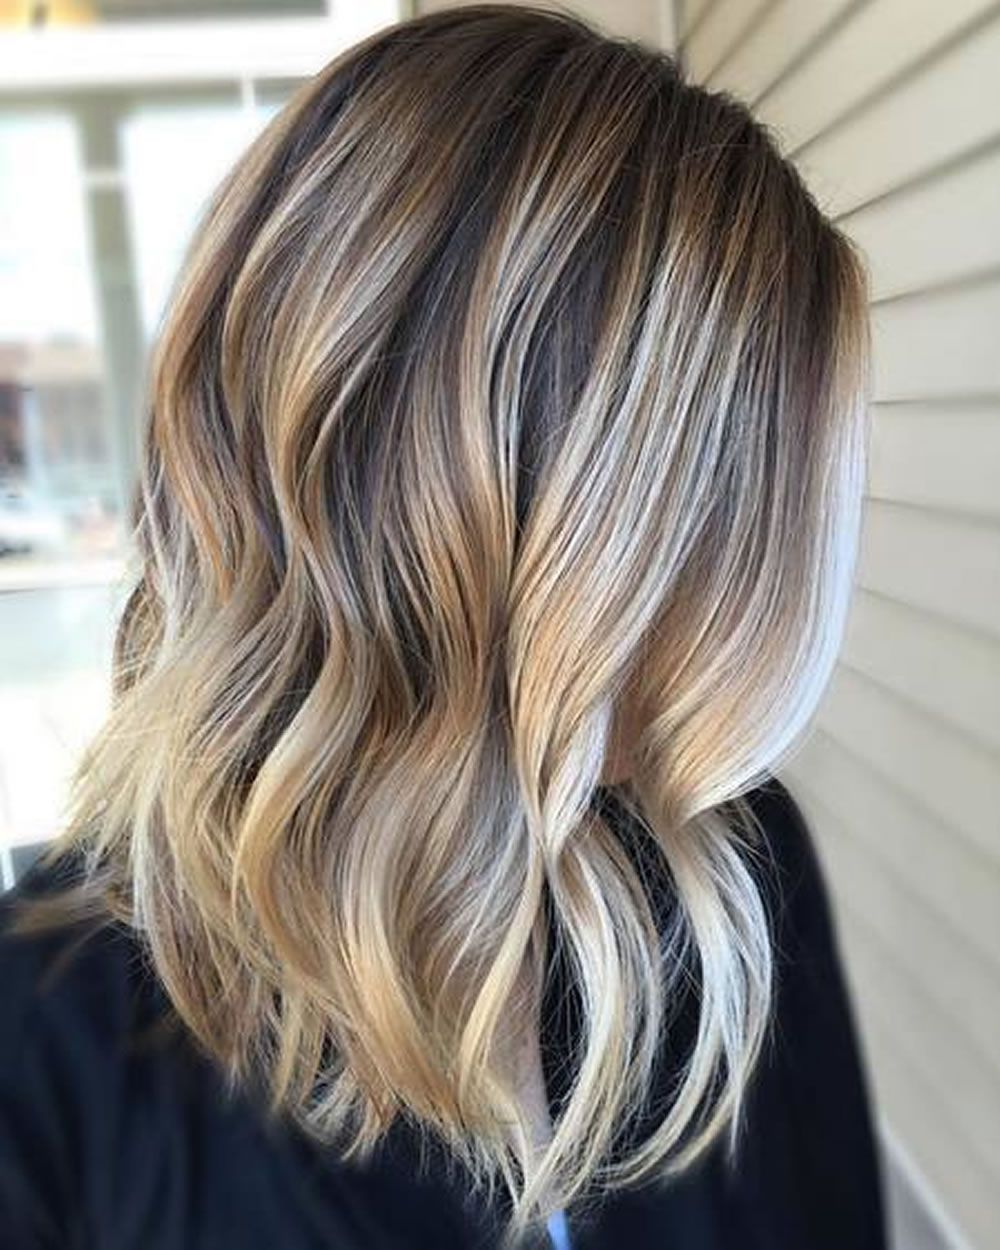 Image Result For Hair Colour Trends 2019 Blonde Hair Ideas Hair